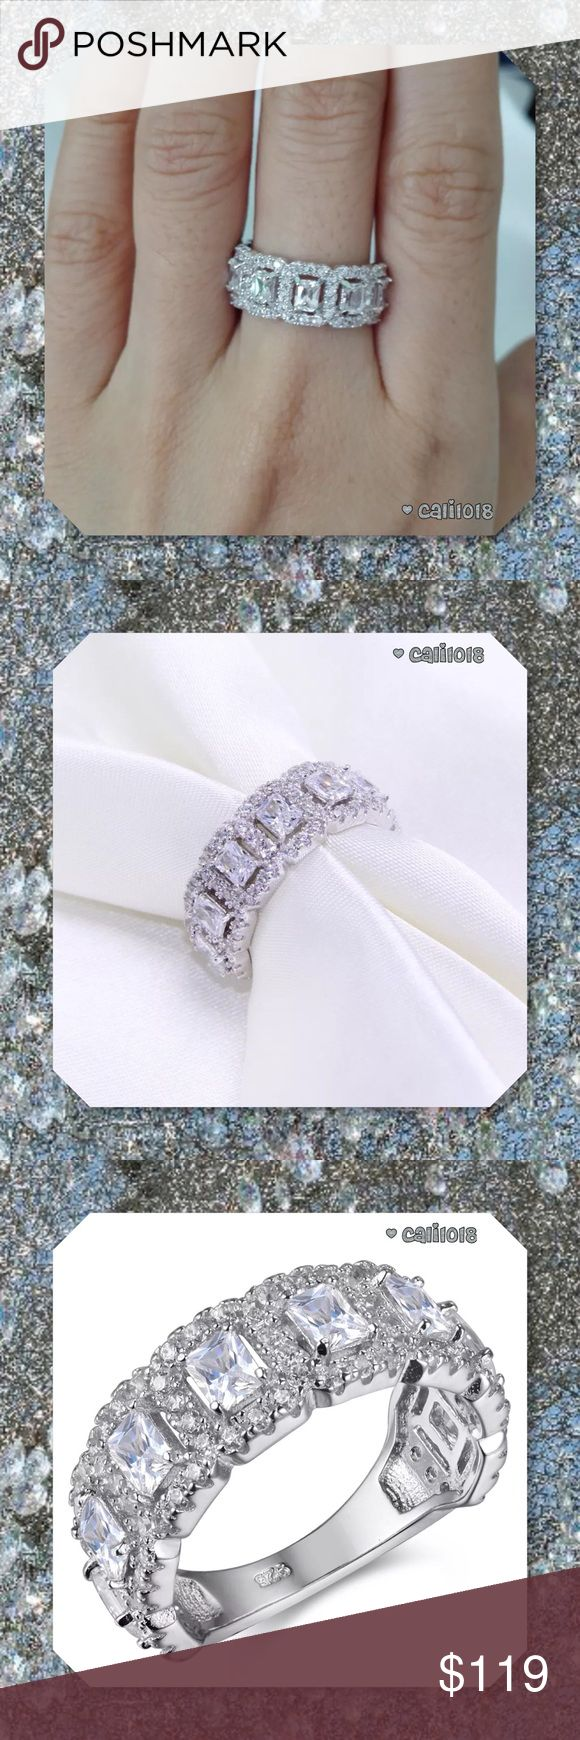 JUST IN2ct Semi Eternity Band 925 Silver Crafted from solid 925 sterling silver, Features 8 emerald cut 3*4mm AAA grade cubic zirconia and surround by 87 pcs round white cz.Top quality stones display amazing enriched clarity.   Gem Type: cubic zirconia Stone Shape: Emerald Metal Type: 925 Sterling Silver  Minimum Color: White US Size: 7  # of Stones: 96pc Dimensions: 4*3mm Weight: 5.23g Total Stone Weight: 2ct Width: 4MM Glam Squad 2 you Jewelry Rings